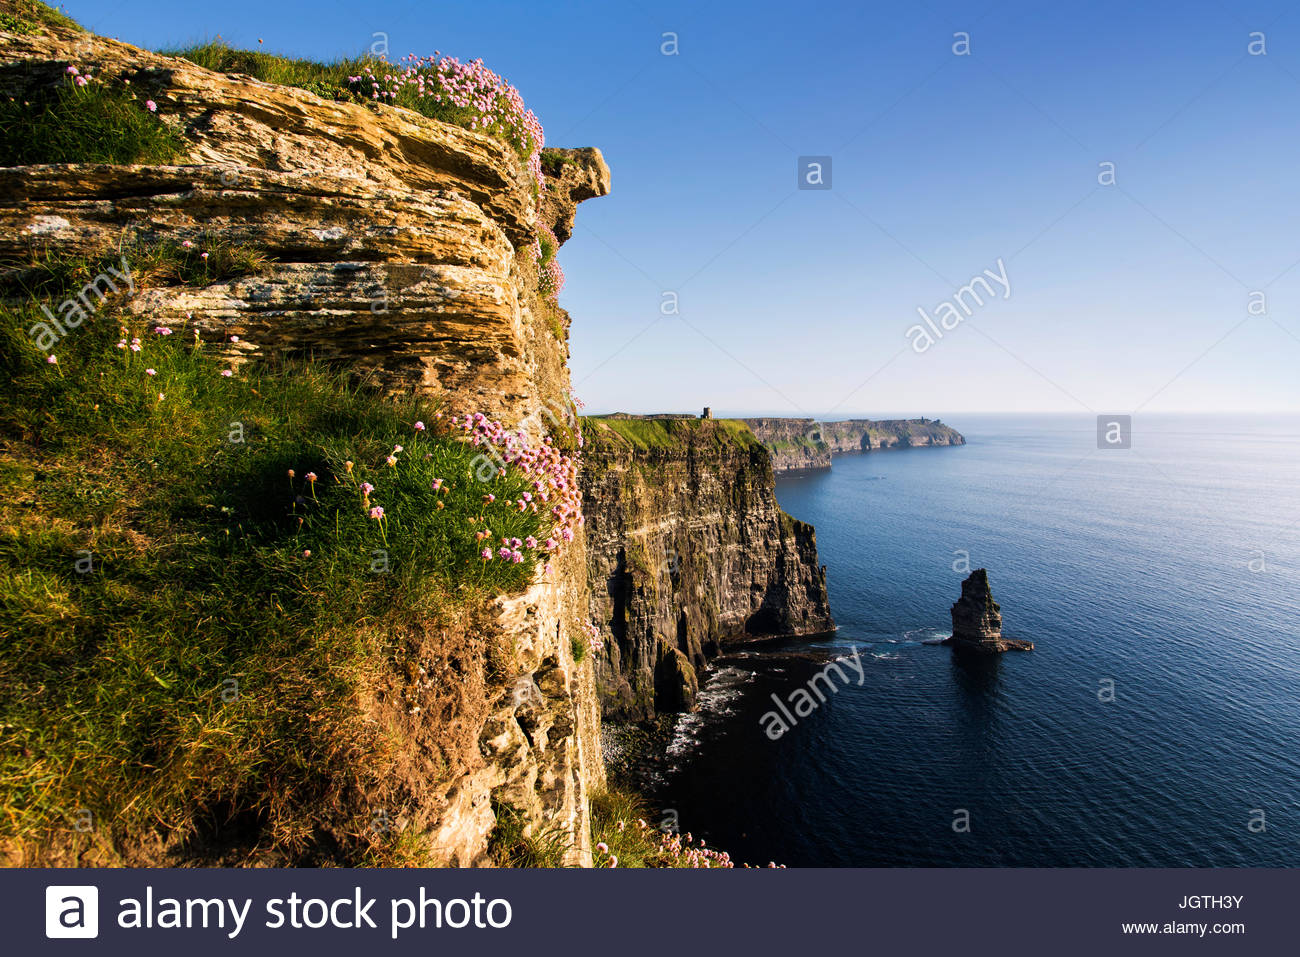 Sunlight shines on the Cliffs of Moher. - Stock Image